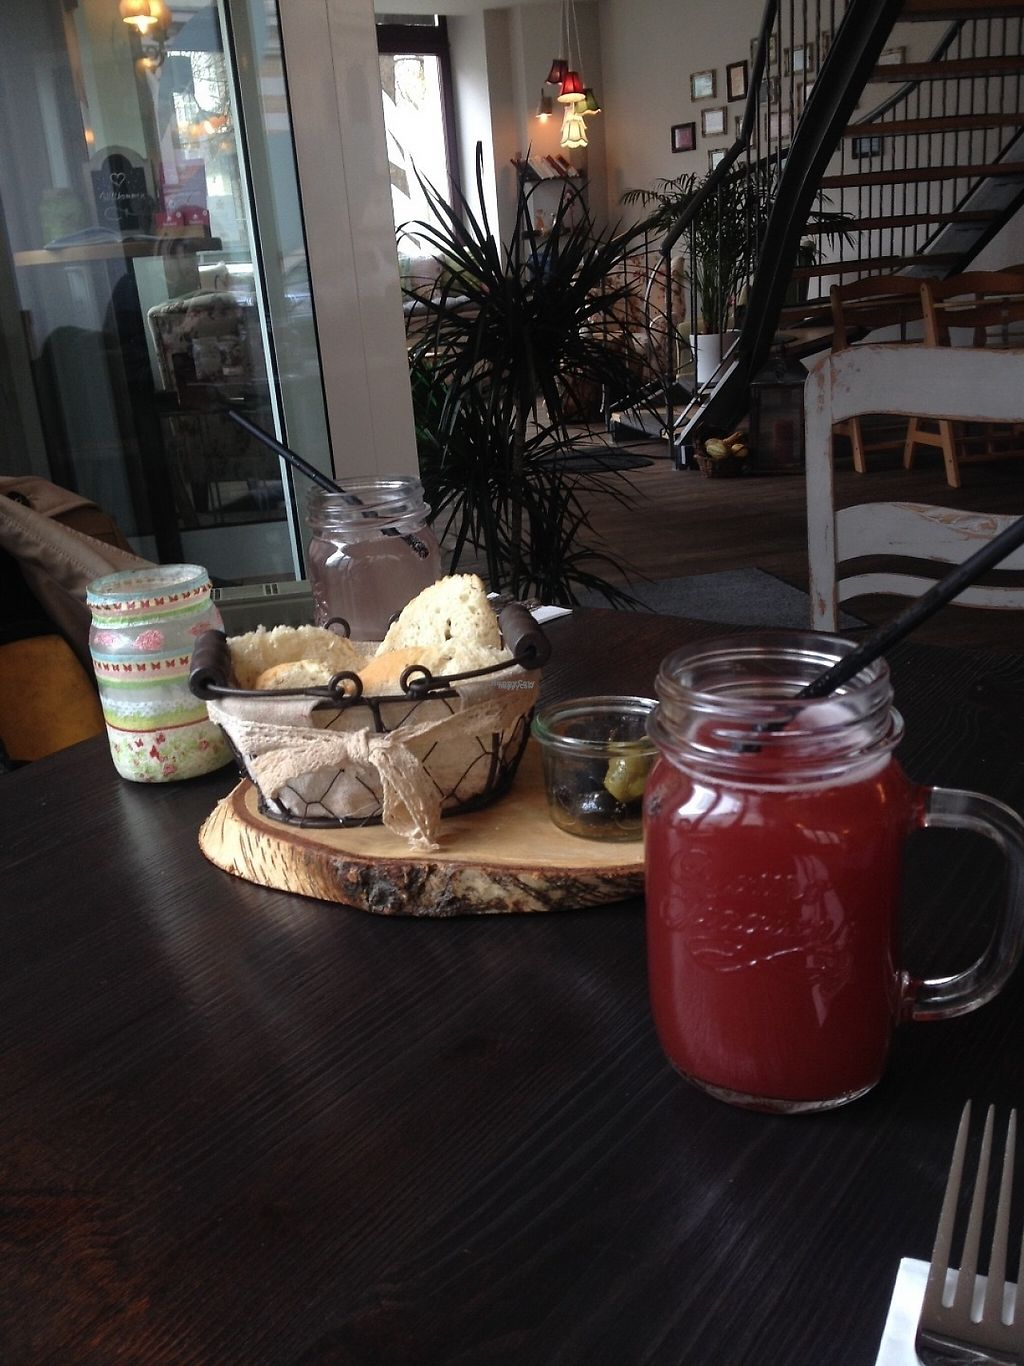 """Photo of GreenSoul  by <a href=""""/members/profile/o0Carolyn0o"""">o0Carolyn0o</a> <br/>Our drinks, a really tasty strawberry Schorle, and complimentary bread and olives <br/> November 21, 2016  - <a href='/contact/abuse/image/58779/192951'>Report</a>"""